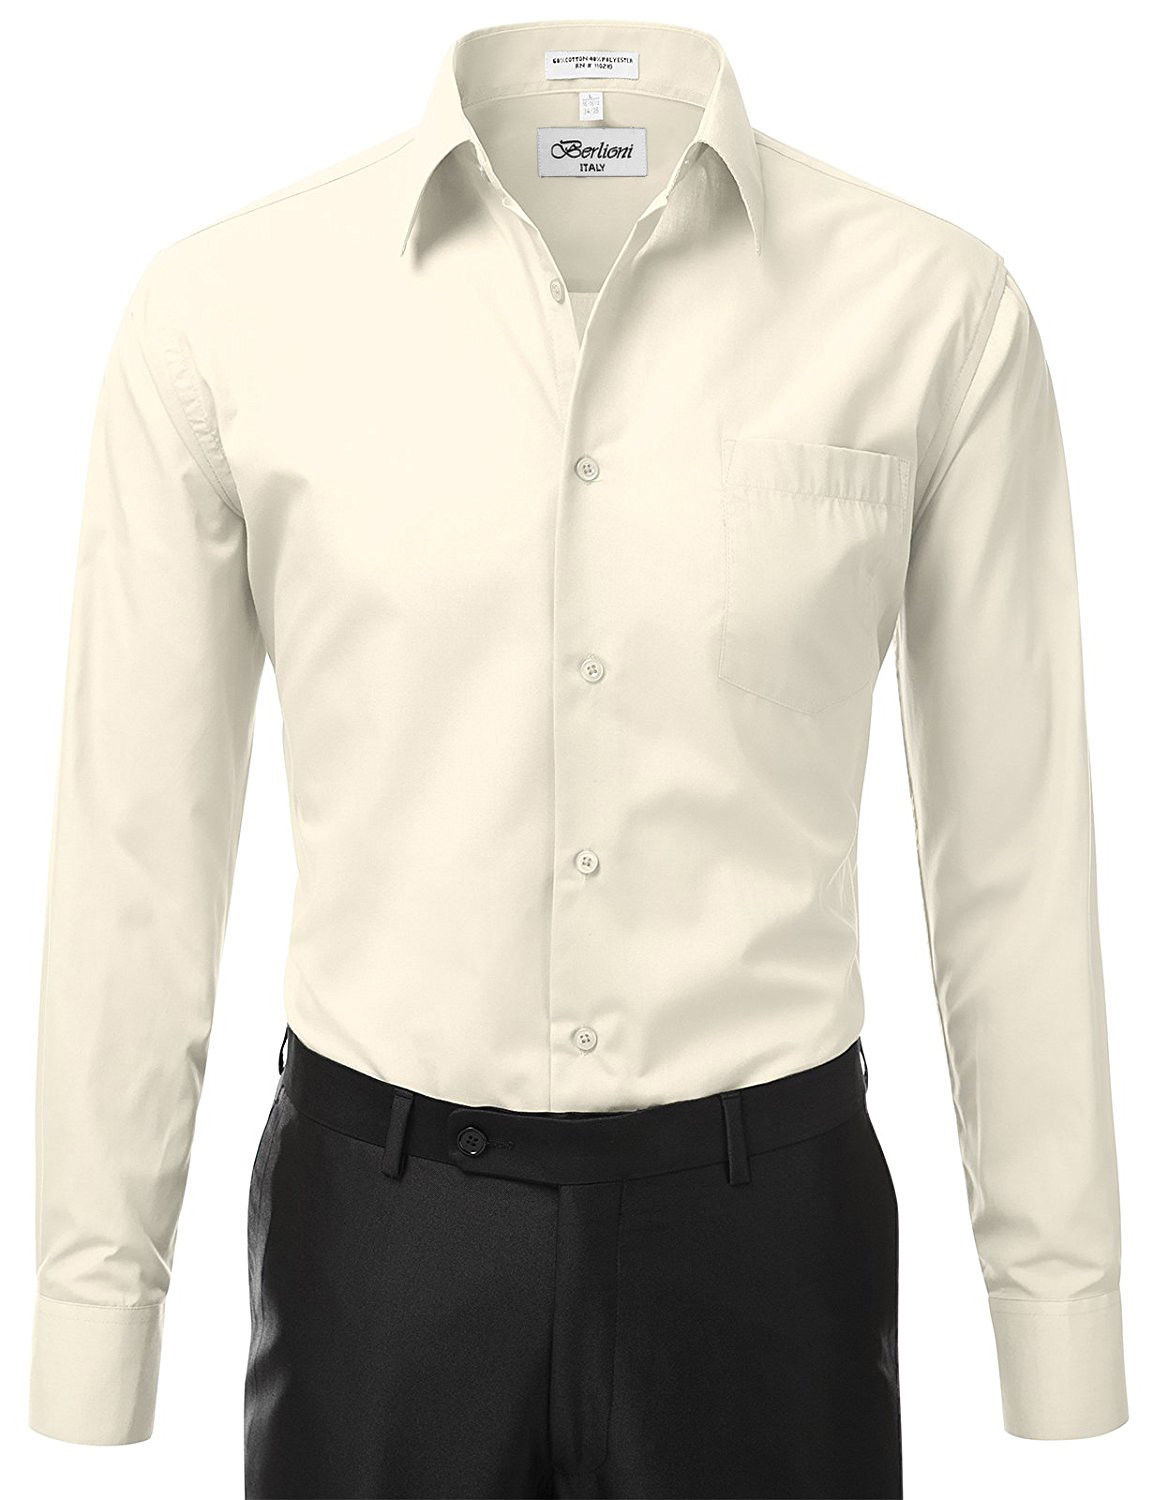 Berlioni-Italy-Men-039-s-Premium-Classic-French-Convertible-Cuff-Solid-Dress-Shirt thumbnail 40